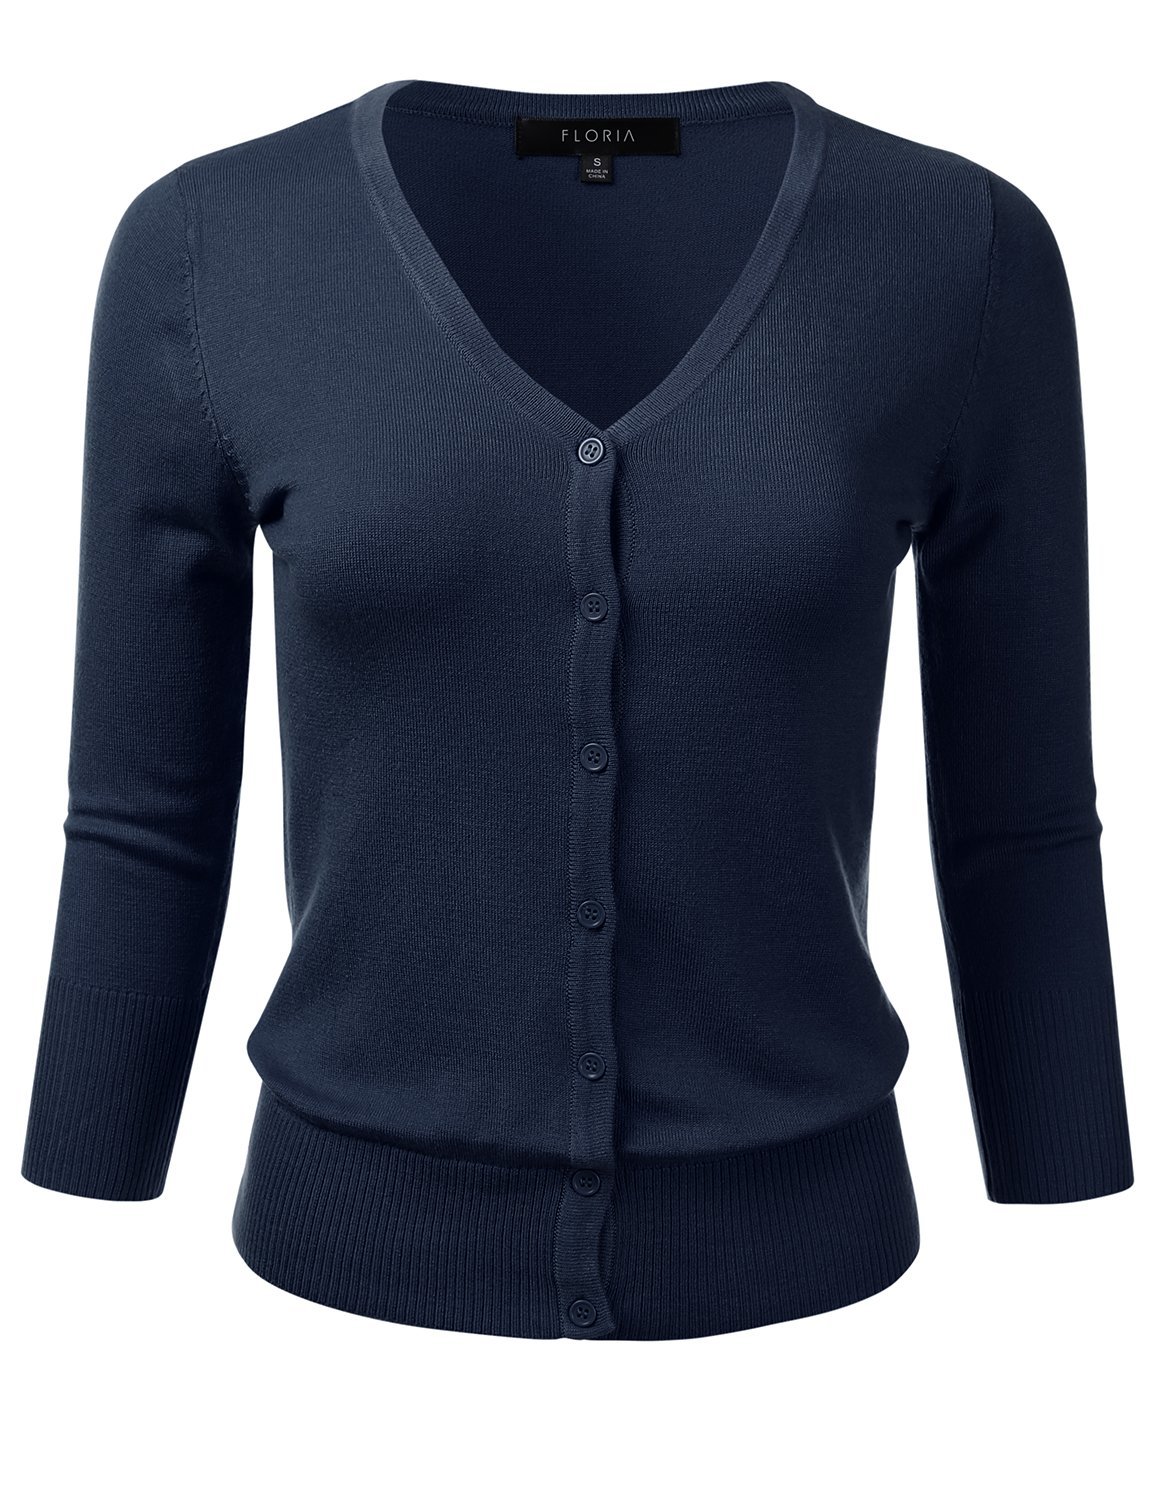 FLORIA Womens Button Down 3/4 Sleeve V-Neck Stretch Knit Cardigan Sweater Navy M by FLORIA (Image #1)